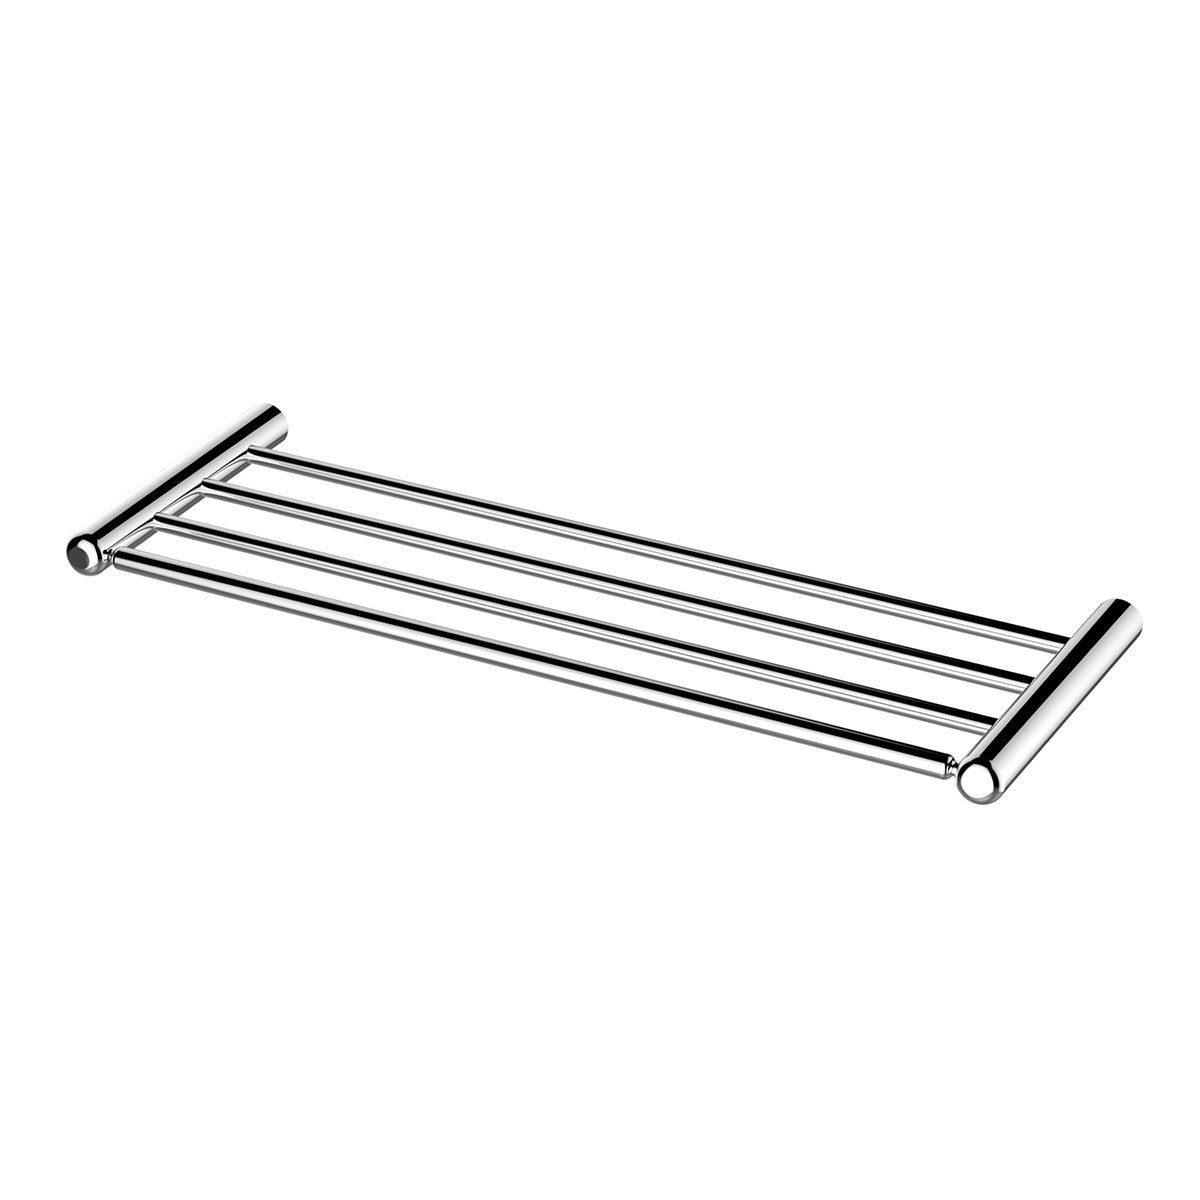 Towel Shelf  23.6 Inch - Chrome Plated Stainless Steel (OD80612)